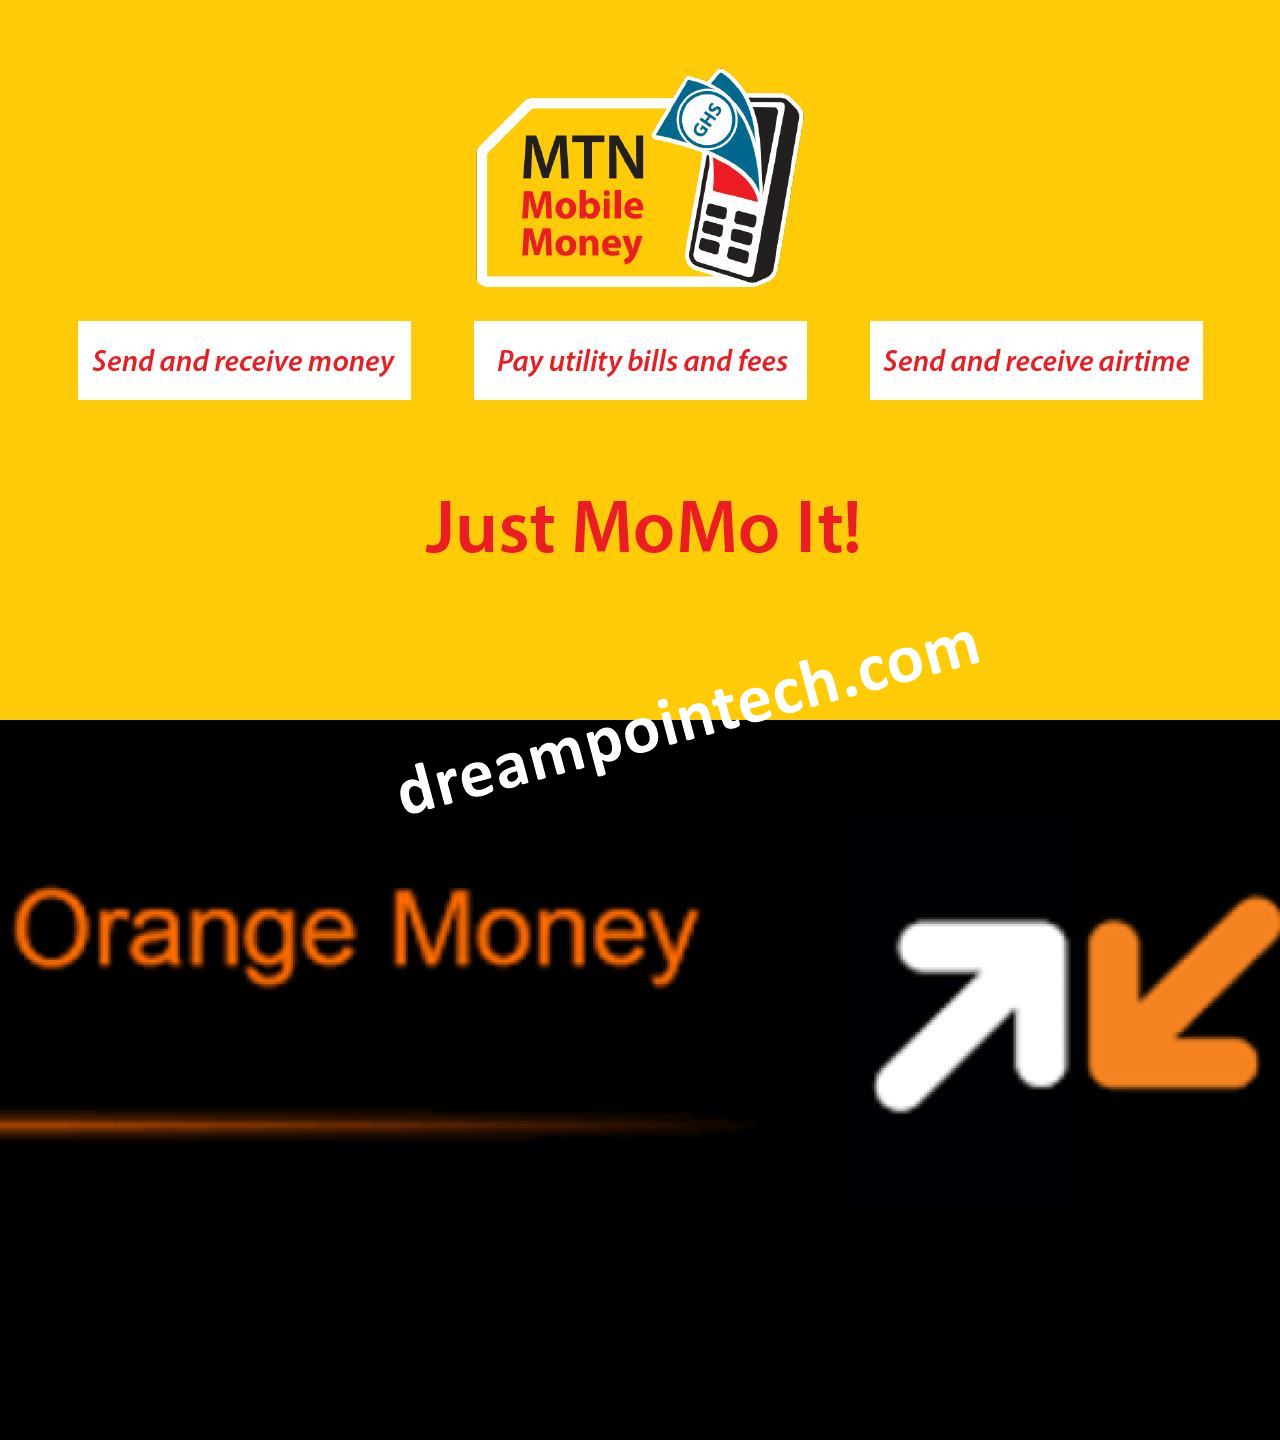 How to Transfer any amount from MTN Mobile Money (MoMo) to Orange Money Online for Free and Vice Versa